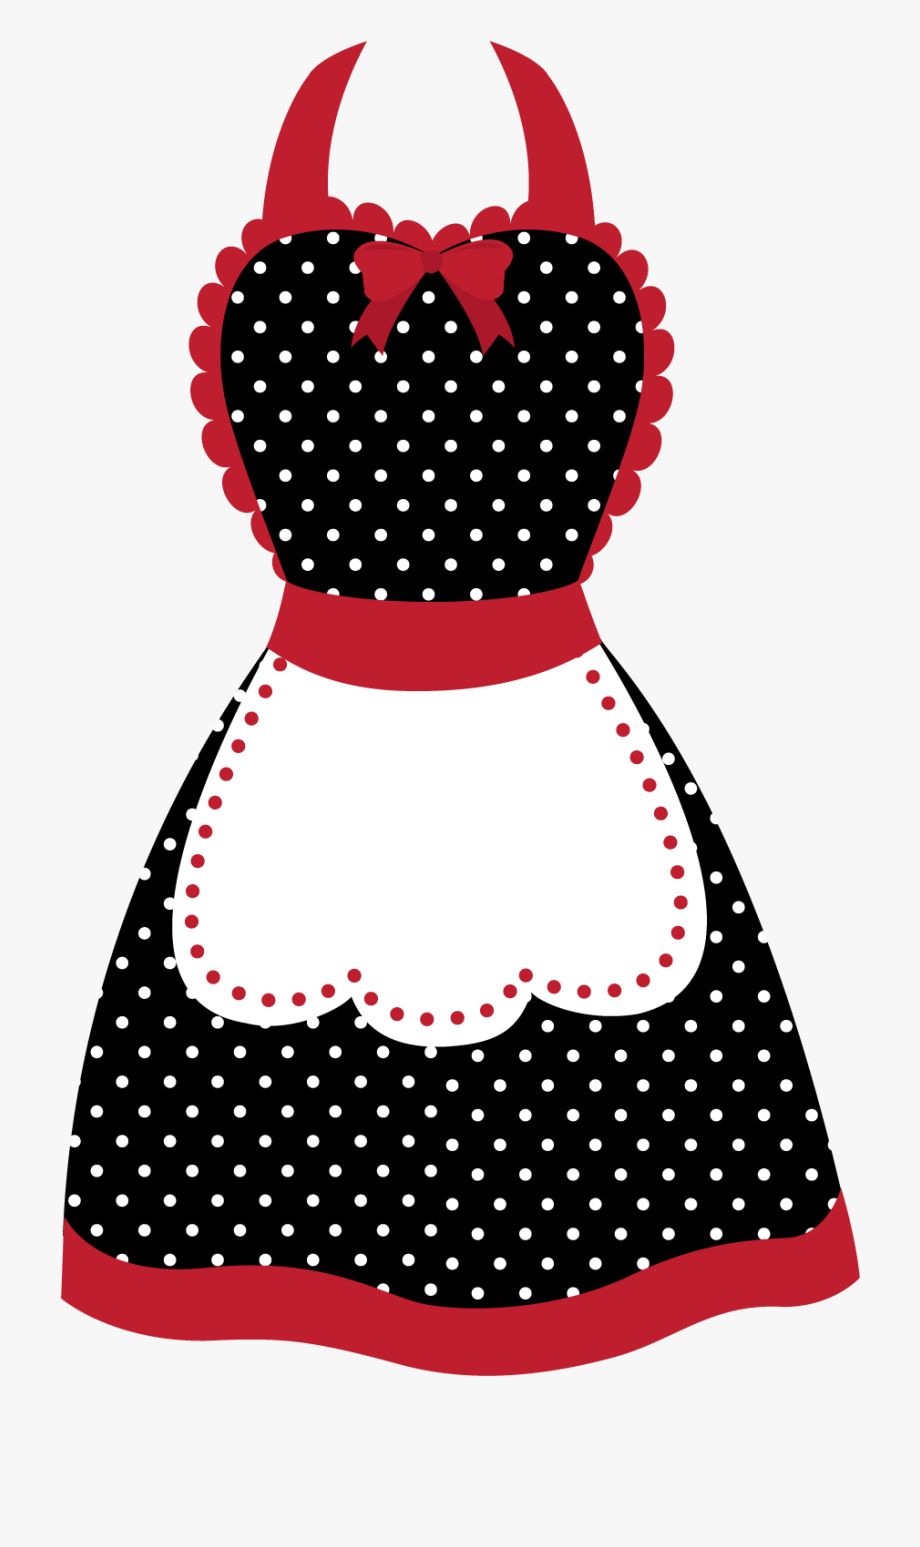 Apron Clipart , Transparent Cartoon, Free Cliparts.